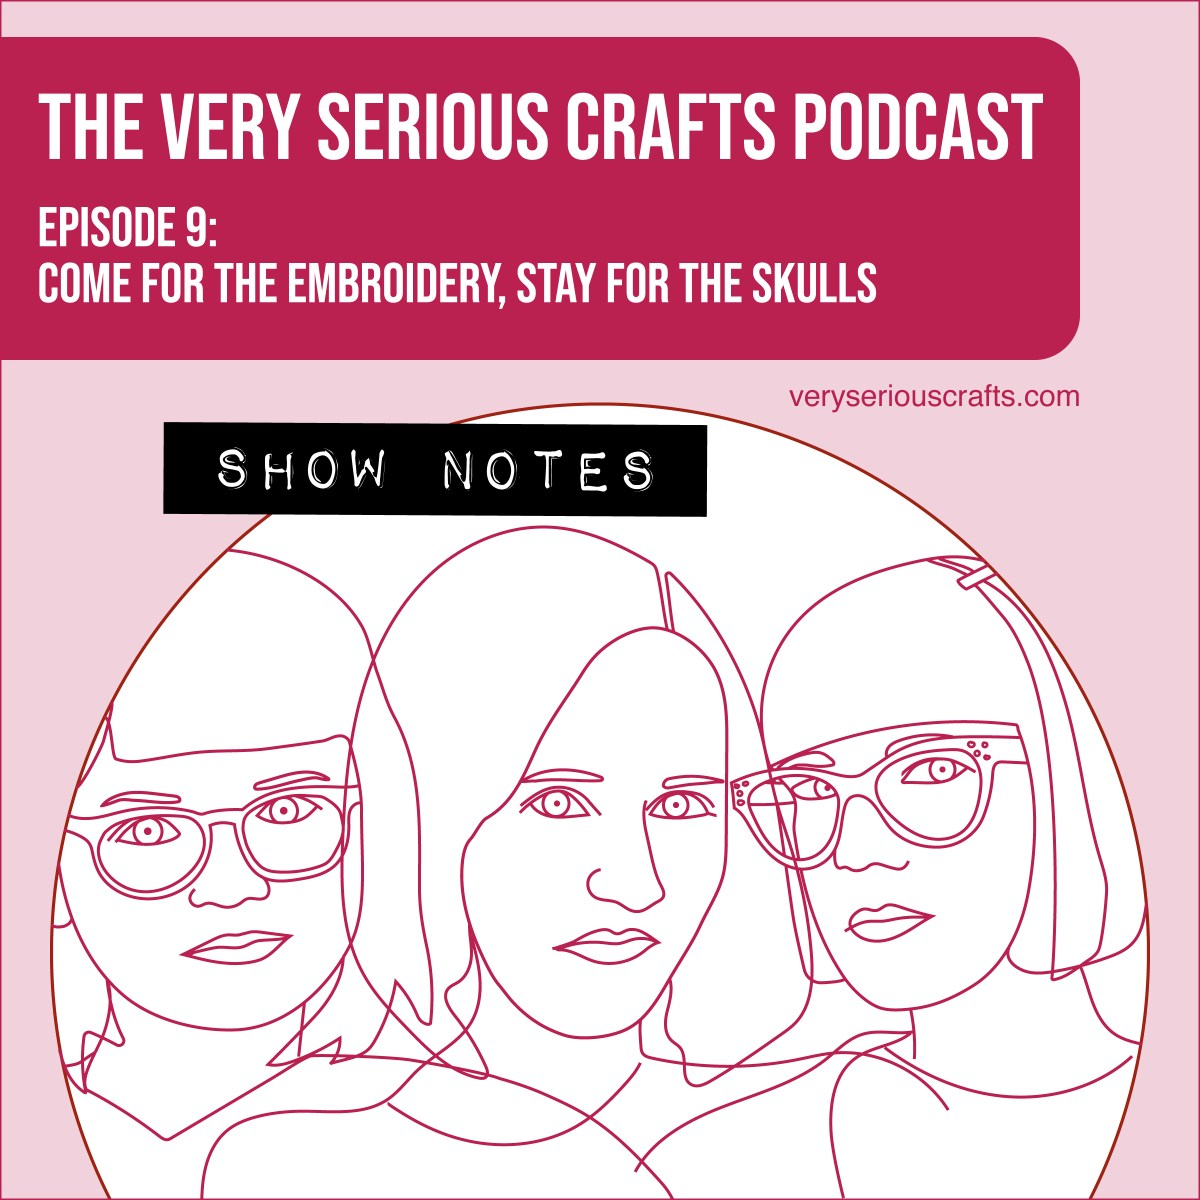 The Very Serious Crafts Podcast, Season 1: Episode 9 – Show Notes